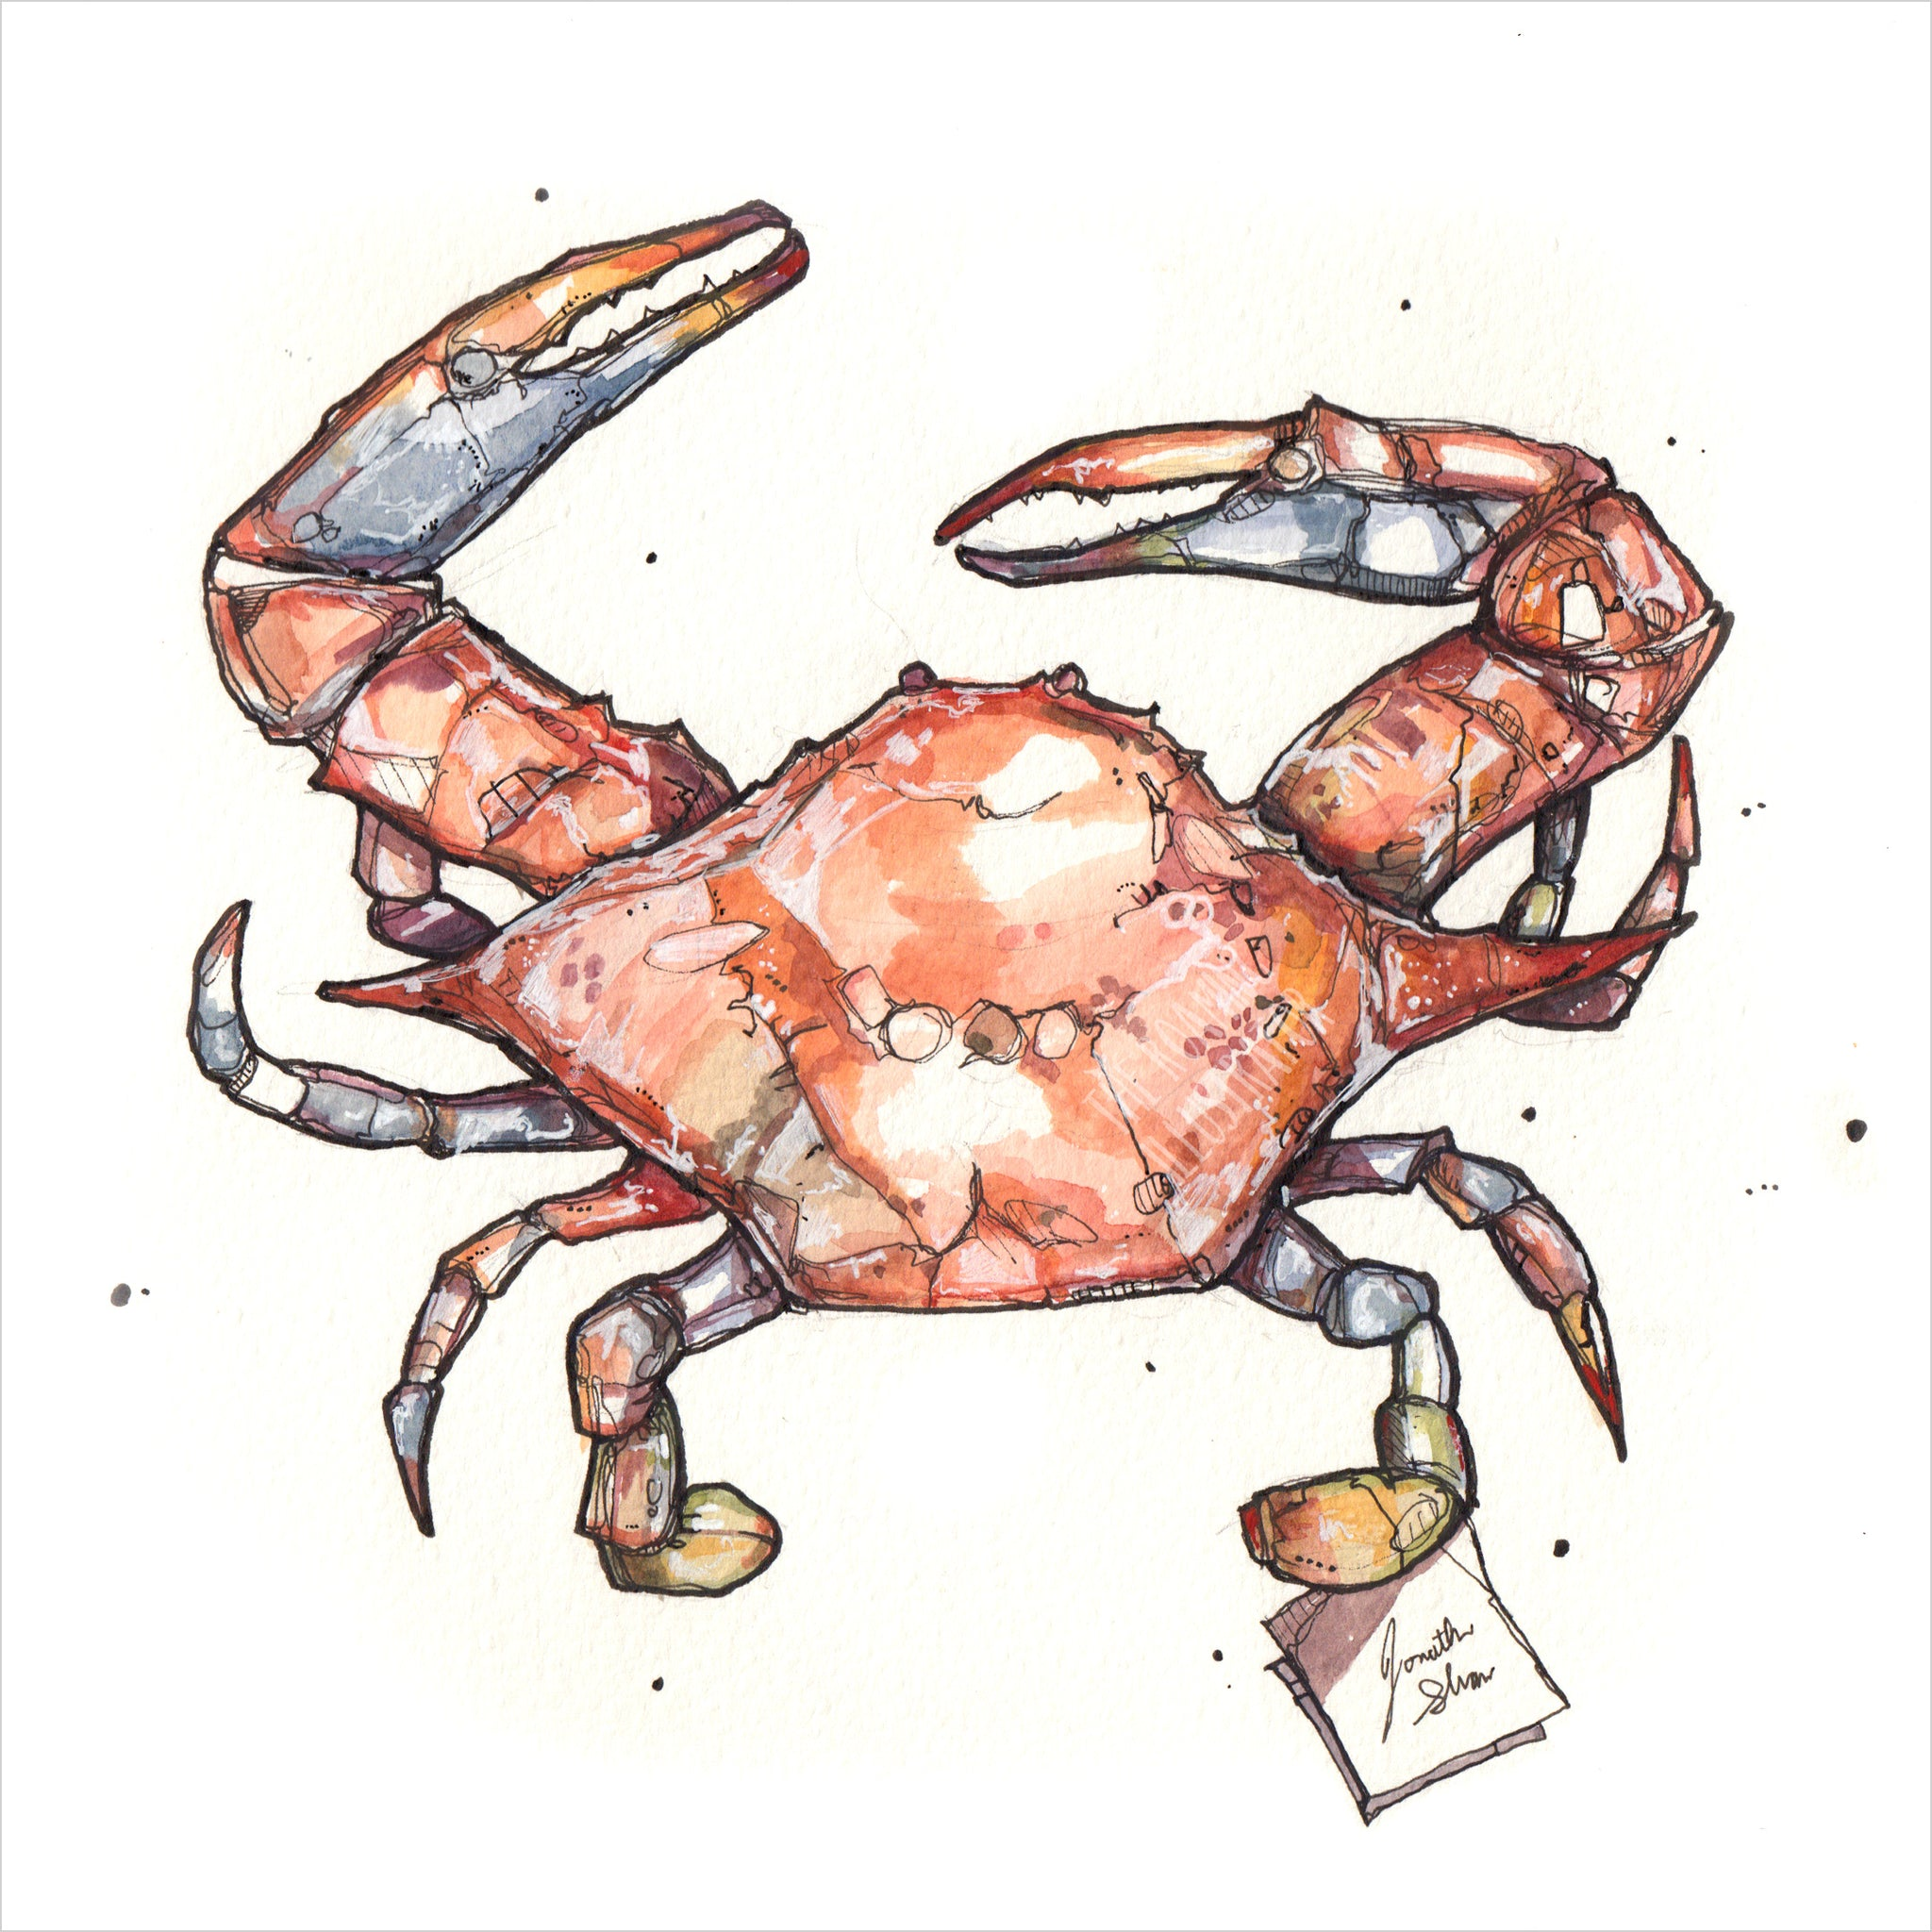 """Red Crab"" - Original 8x10 Illustration (SOLD)"